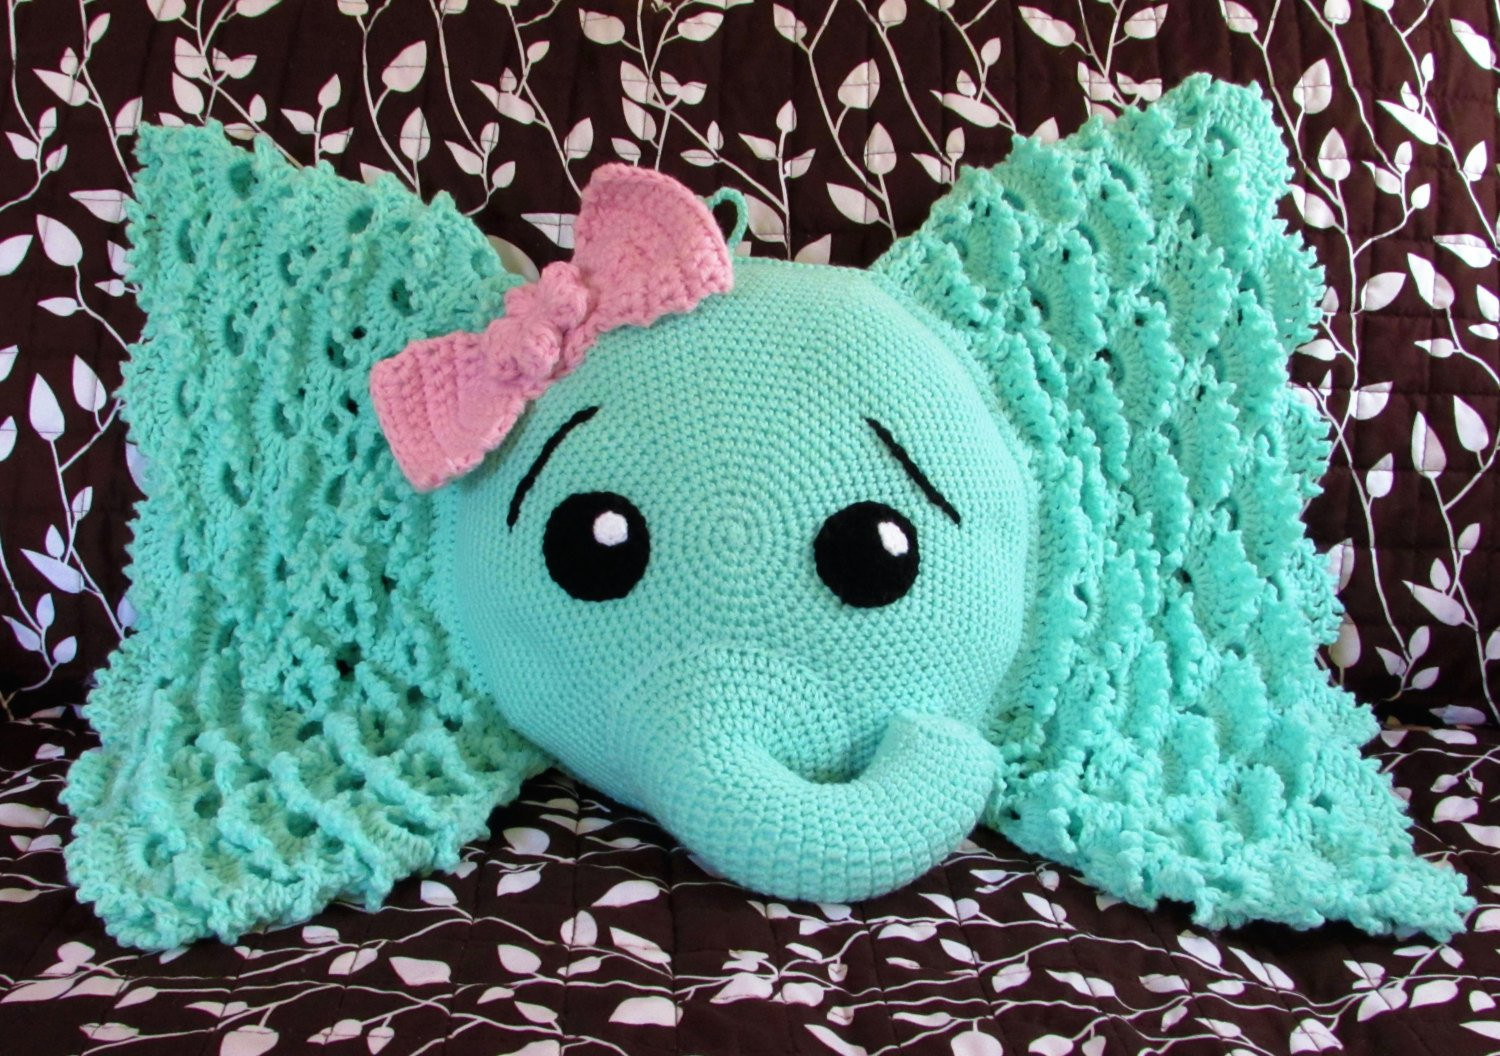 Crochet Elephant Pillow Josefina the Elephant Elephant